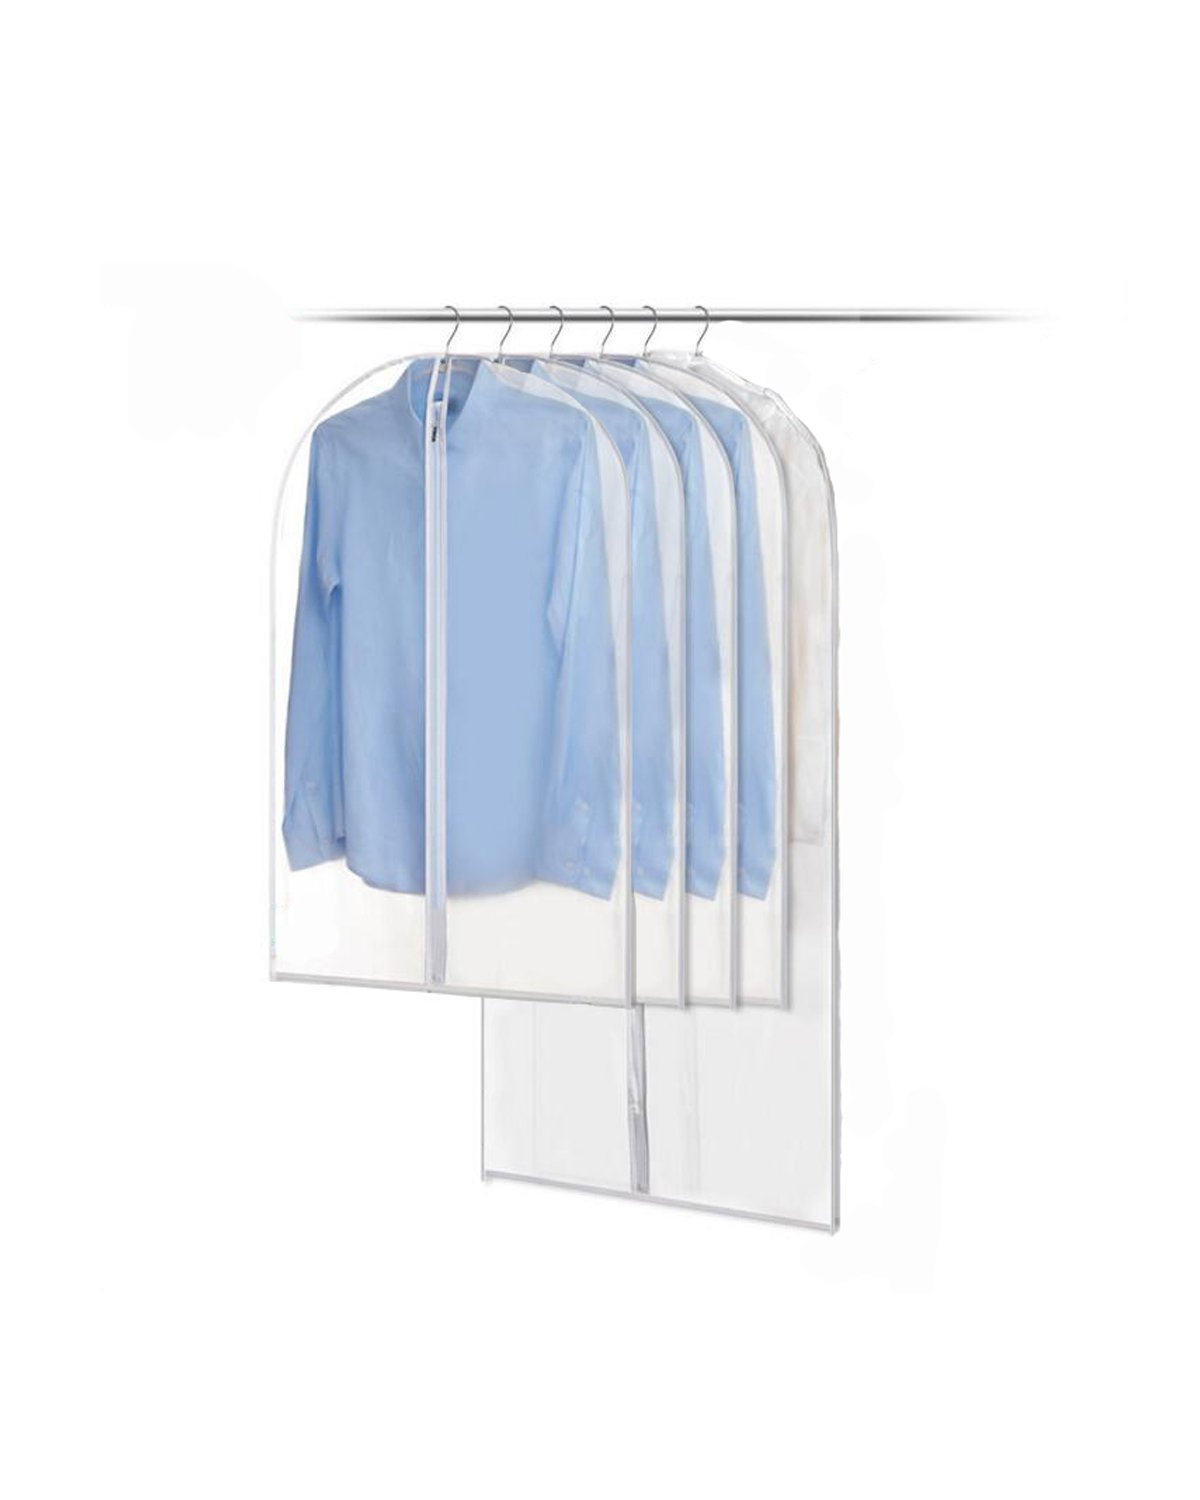 5Pack Amersumer Pack of 5 Translucent Dust Cover Garment Storage Organizer Bag, Zipper Garment Clothes Covers, 4 Medium and 1 Large.